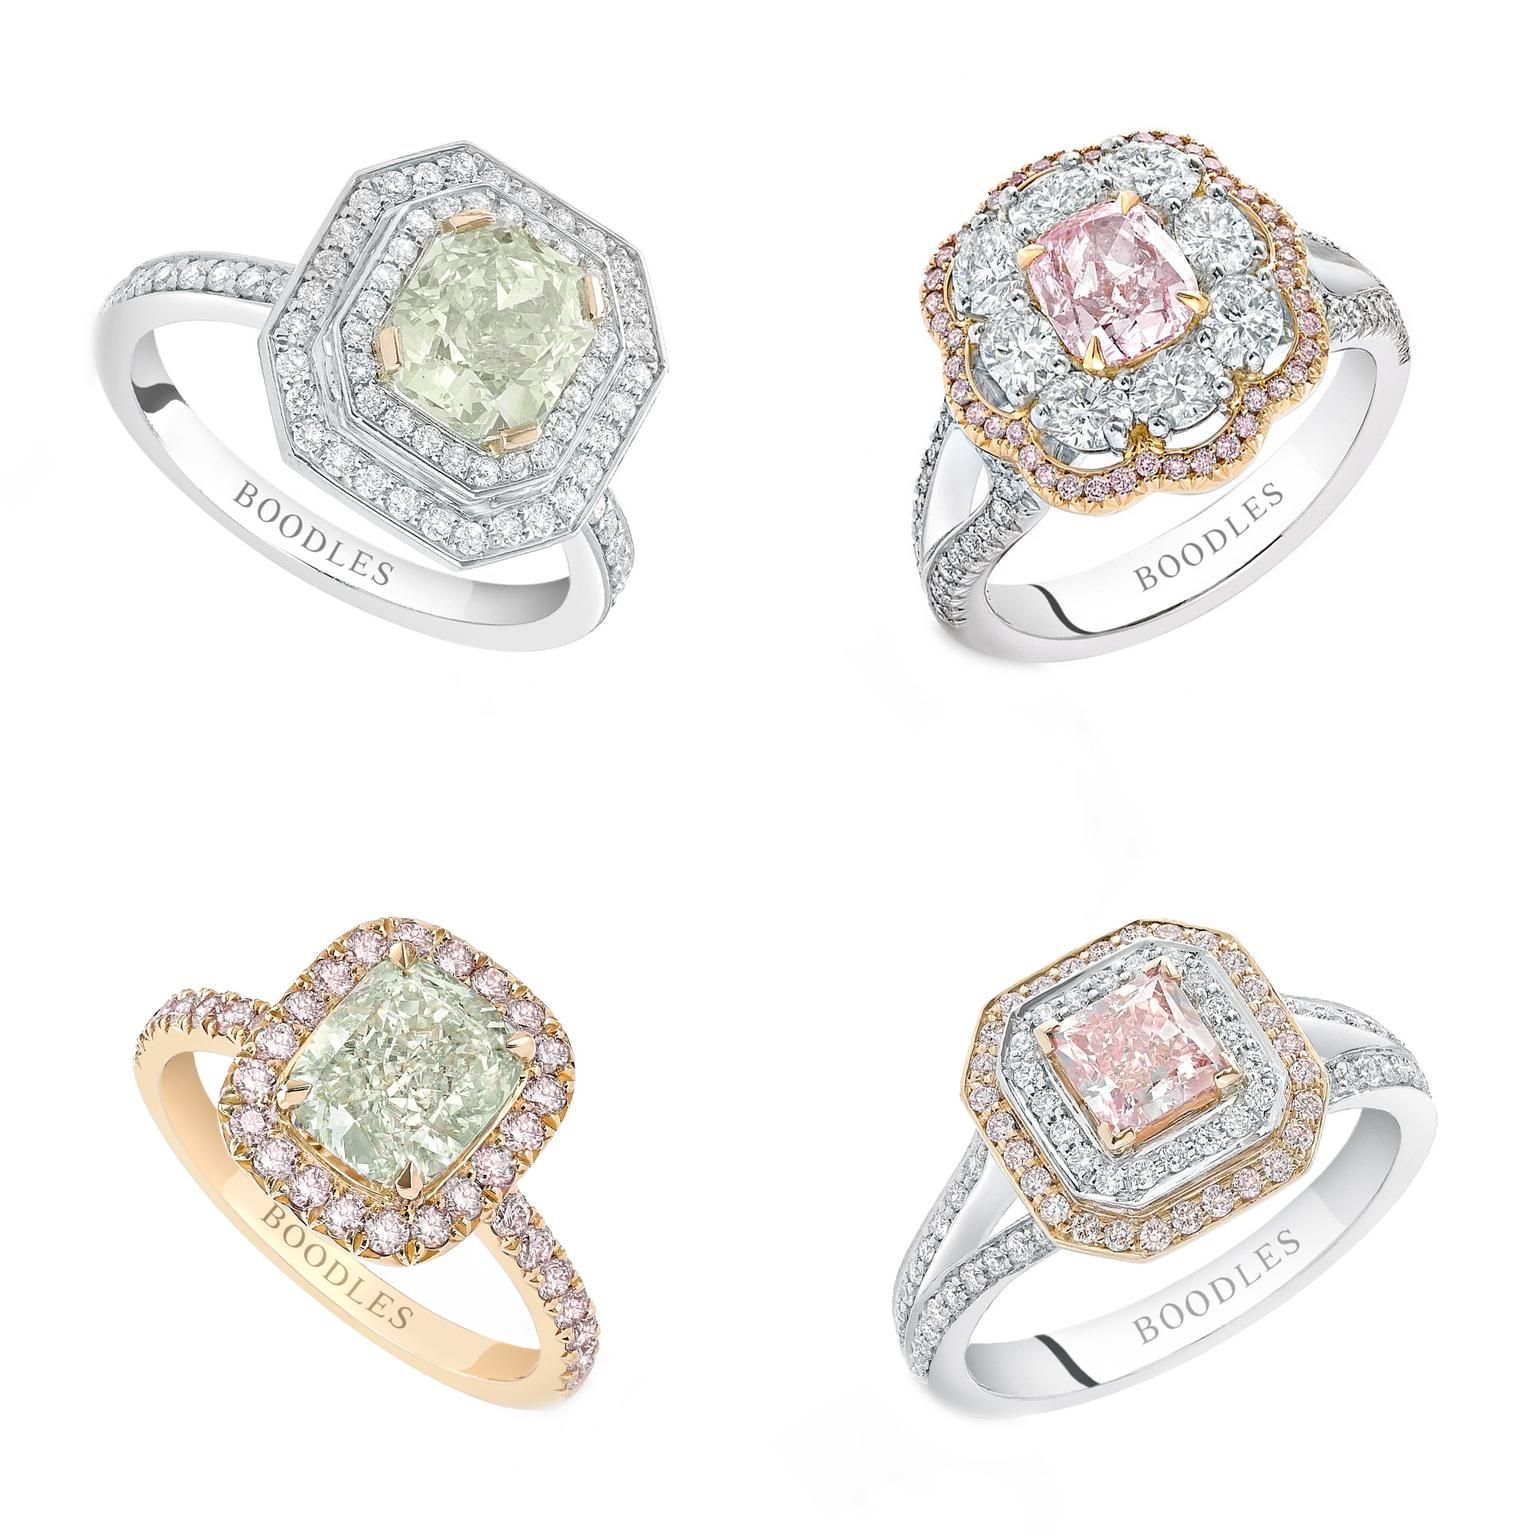 Jewellery Business Magazine Boodles Lights Up with Rare Coloured Diamonds